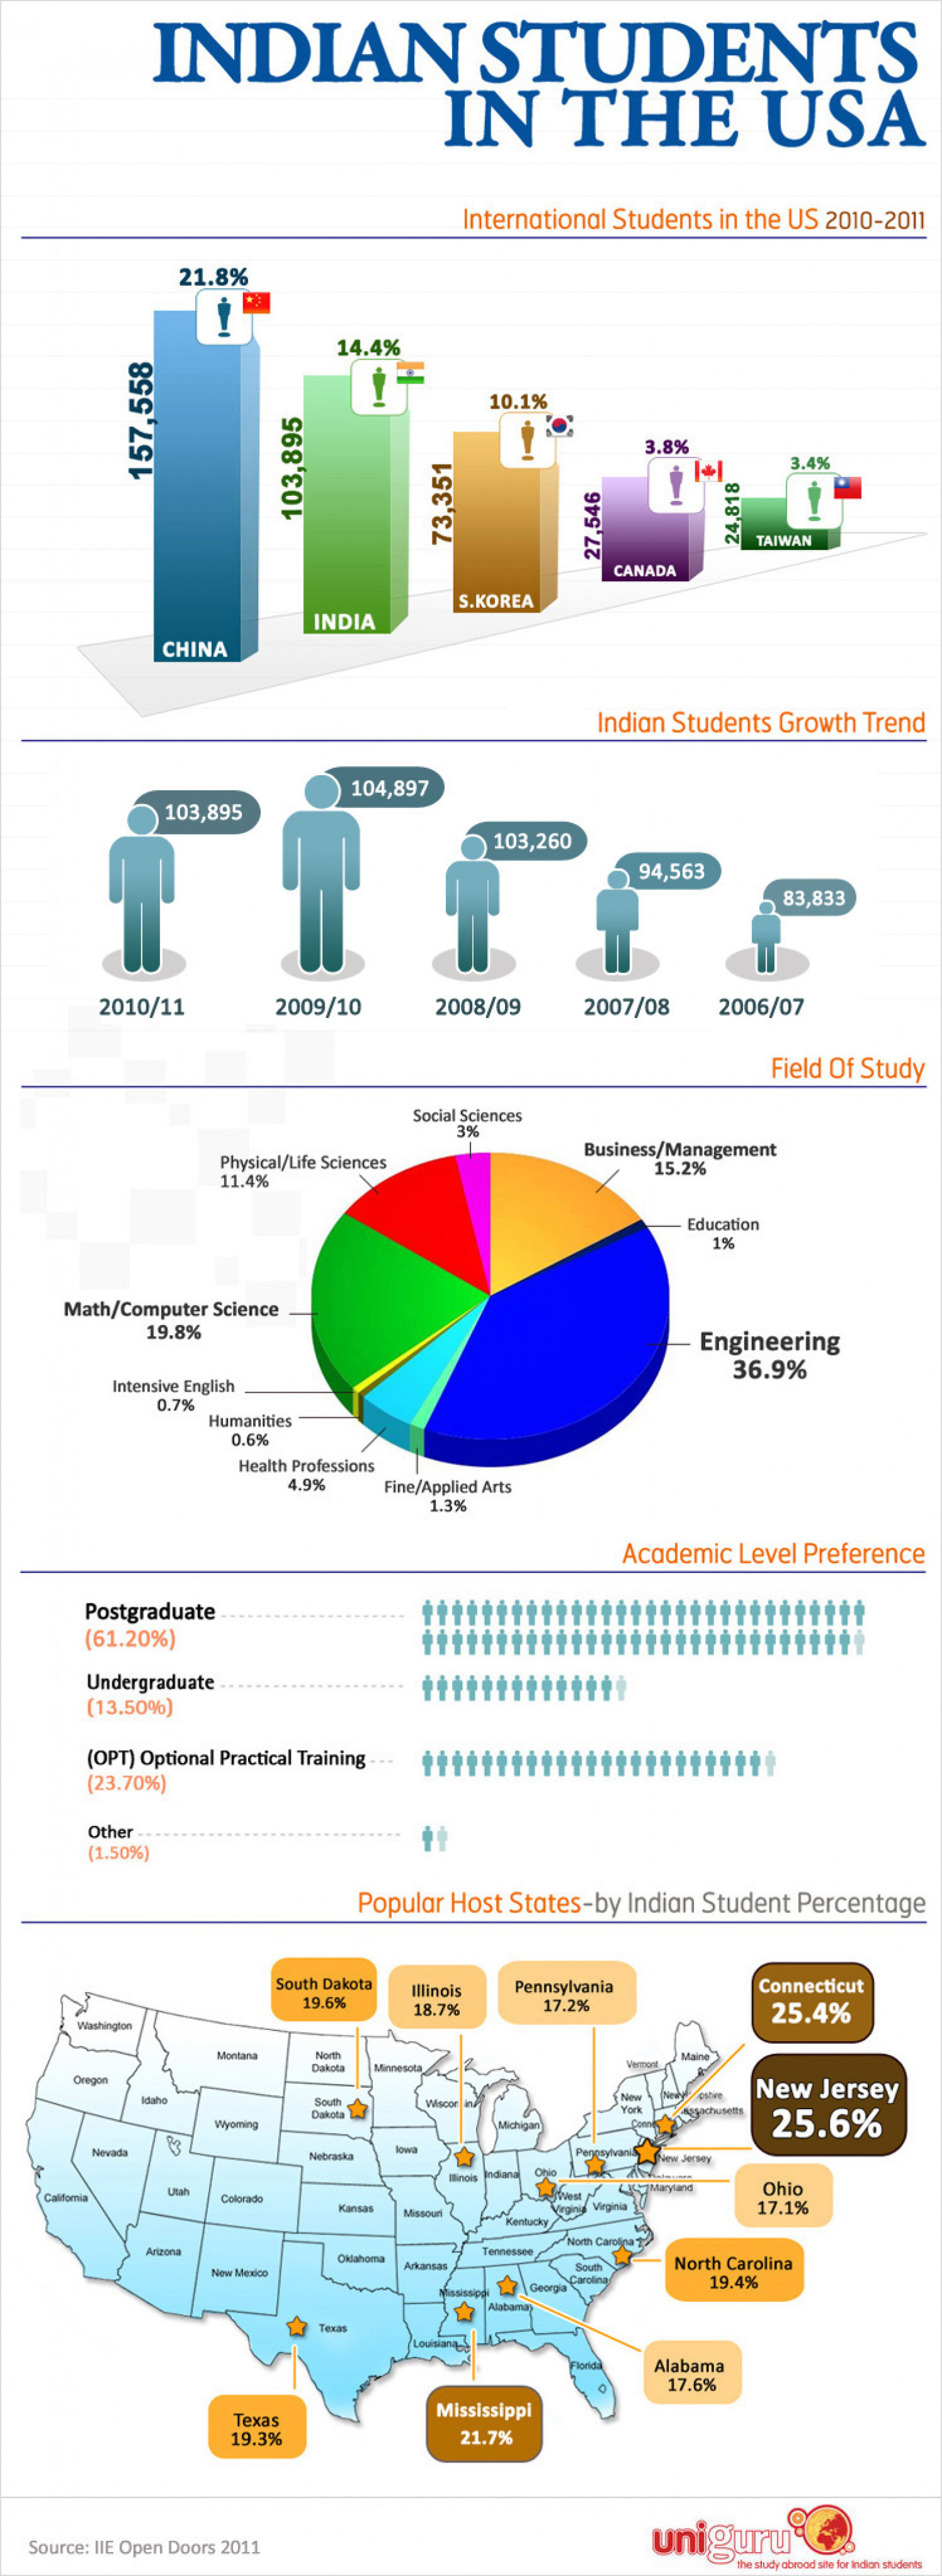 Indian Students in the US Infographic